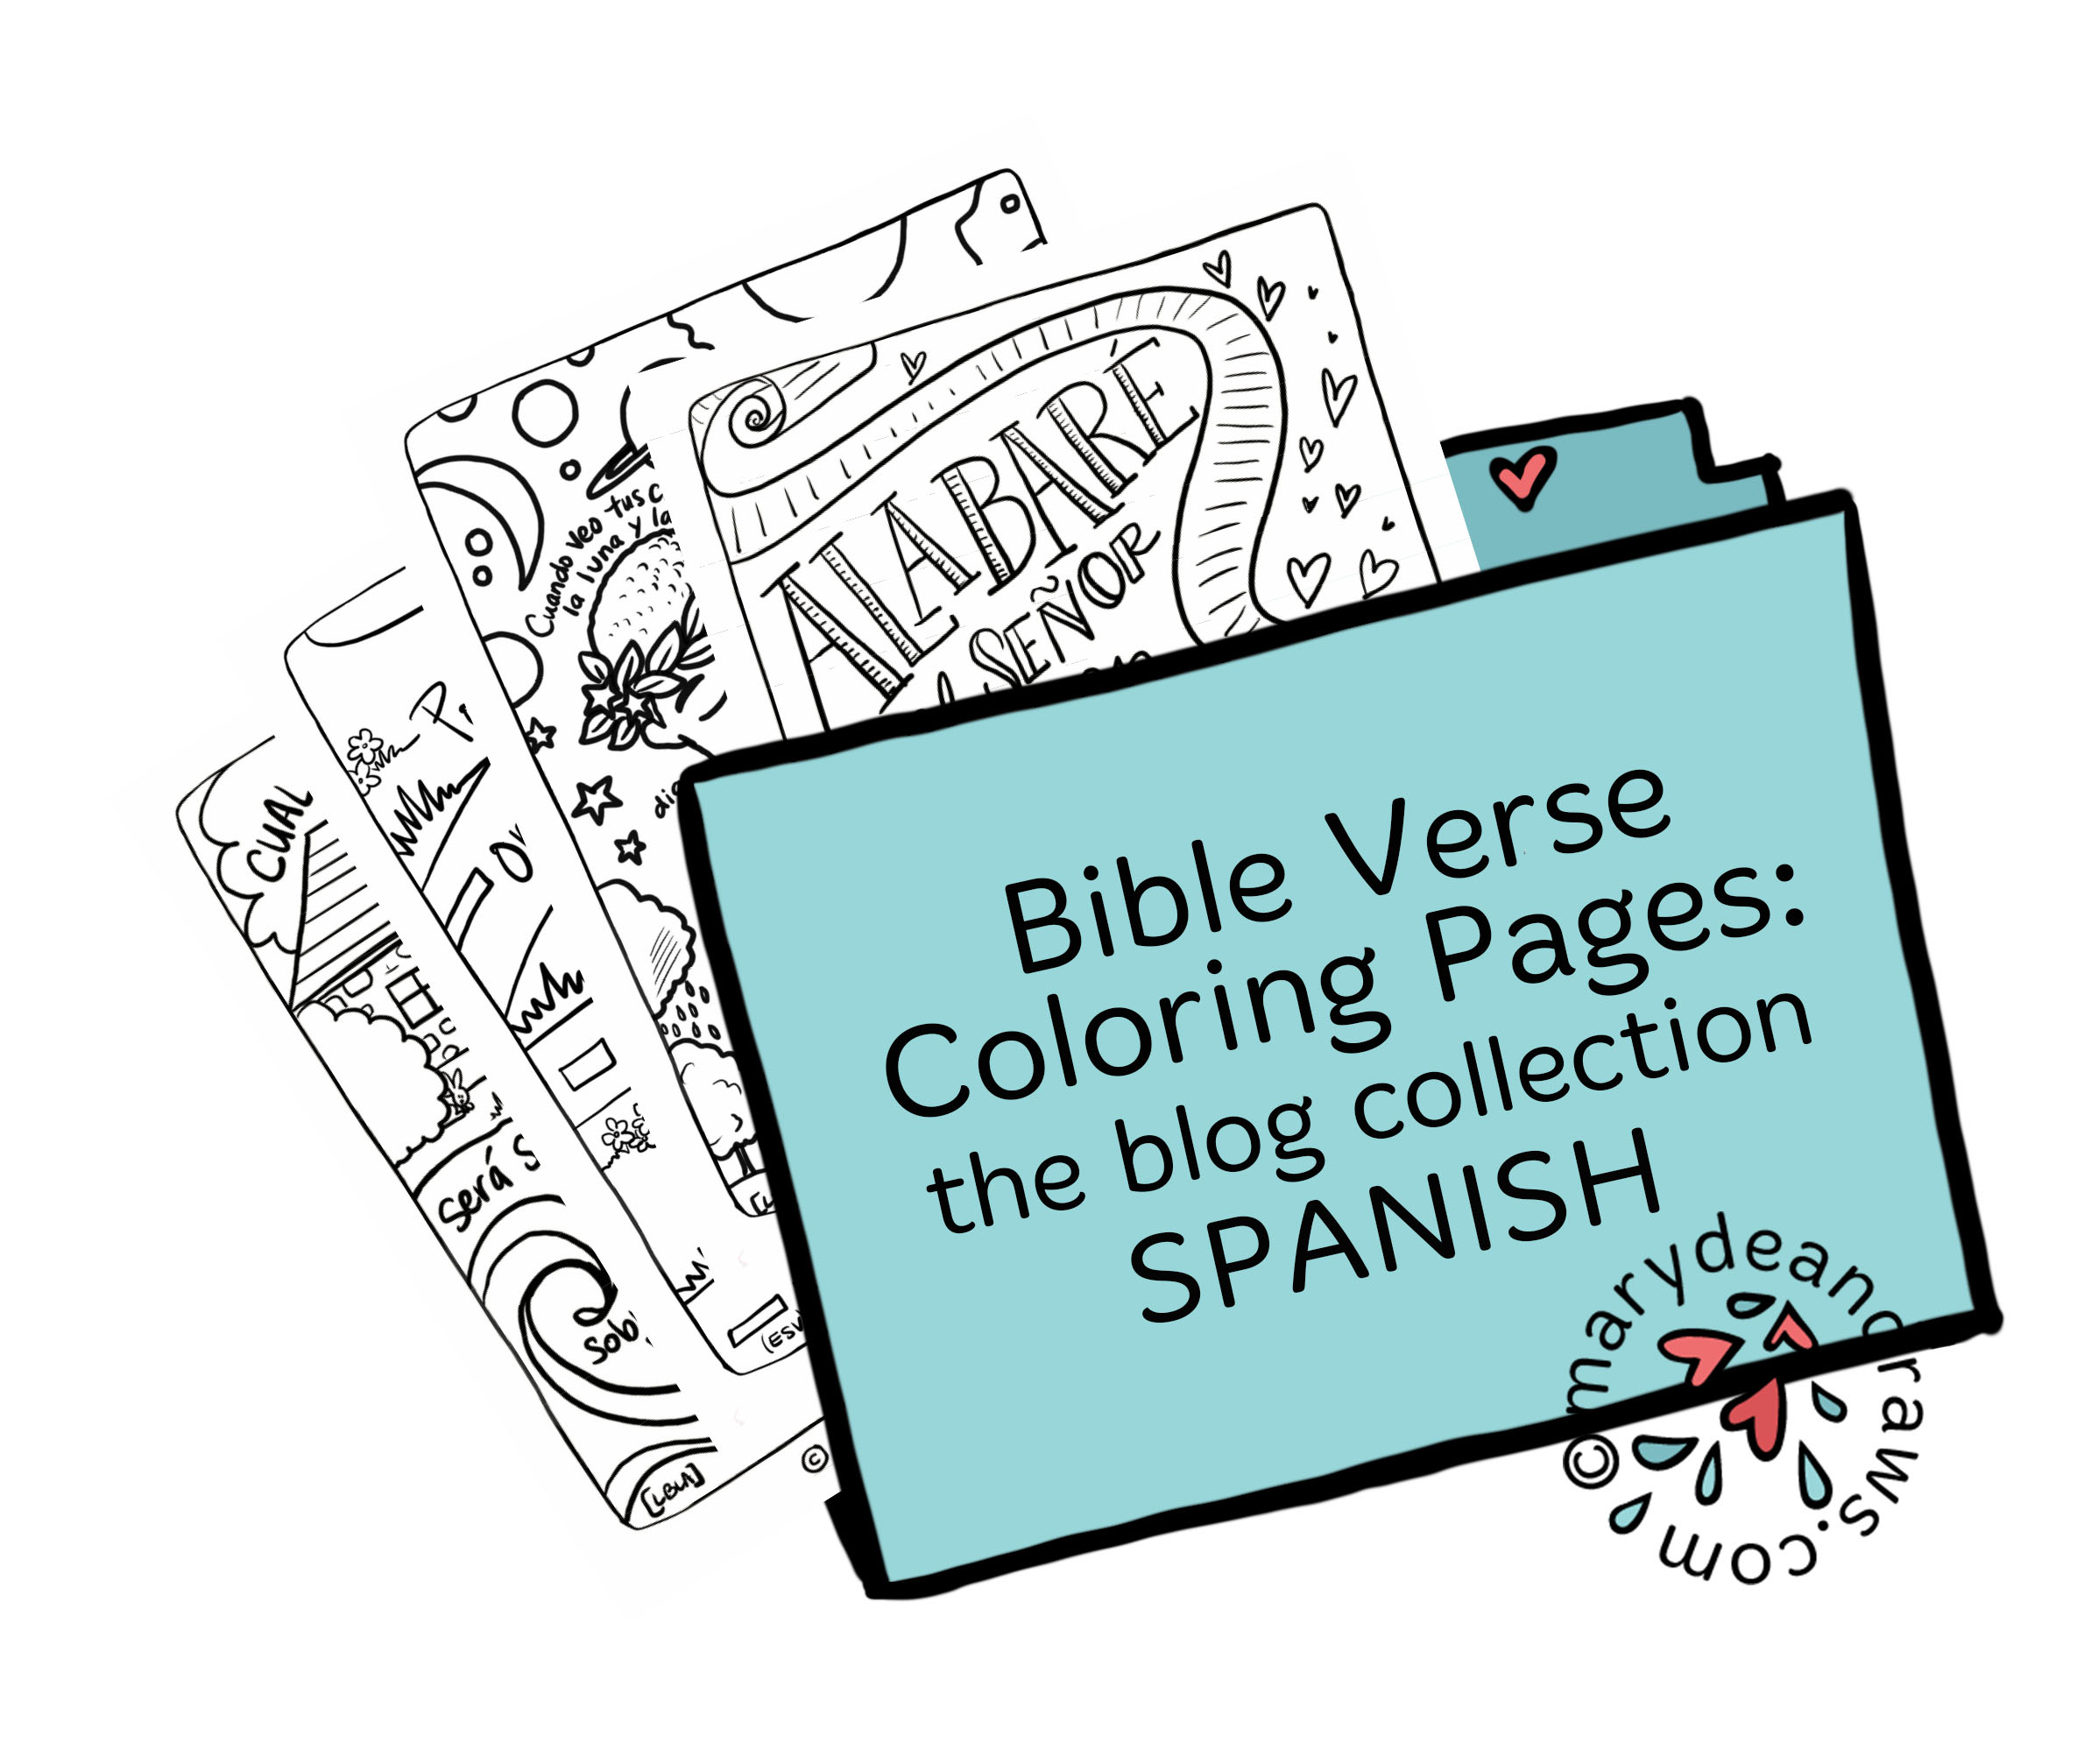 Printable Bible Verse Coloring Pages: BLOG COLLECTION ...